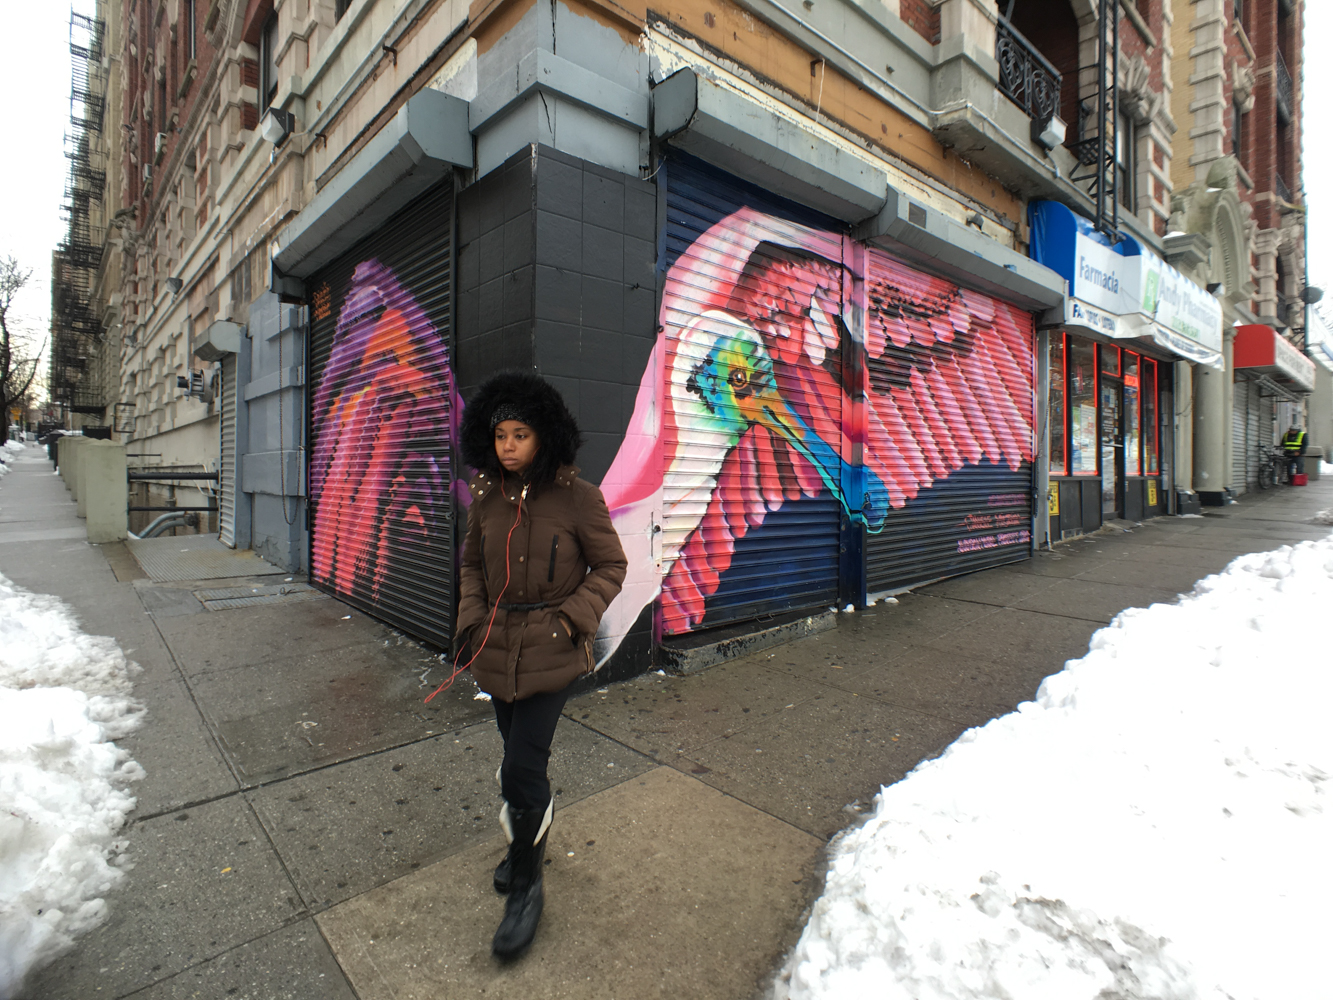 Danielle Mastrion's first Roseate Spoonbill for the Audubon Mural Project, located at 156th and Broadway, was removed during the building's renovation. She replaced it with a new Spoonbill at its current location, 11 blocks away. Mike Fernandez/Audubon